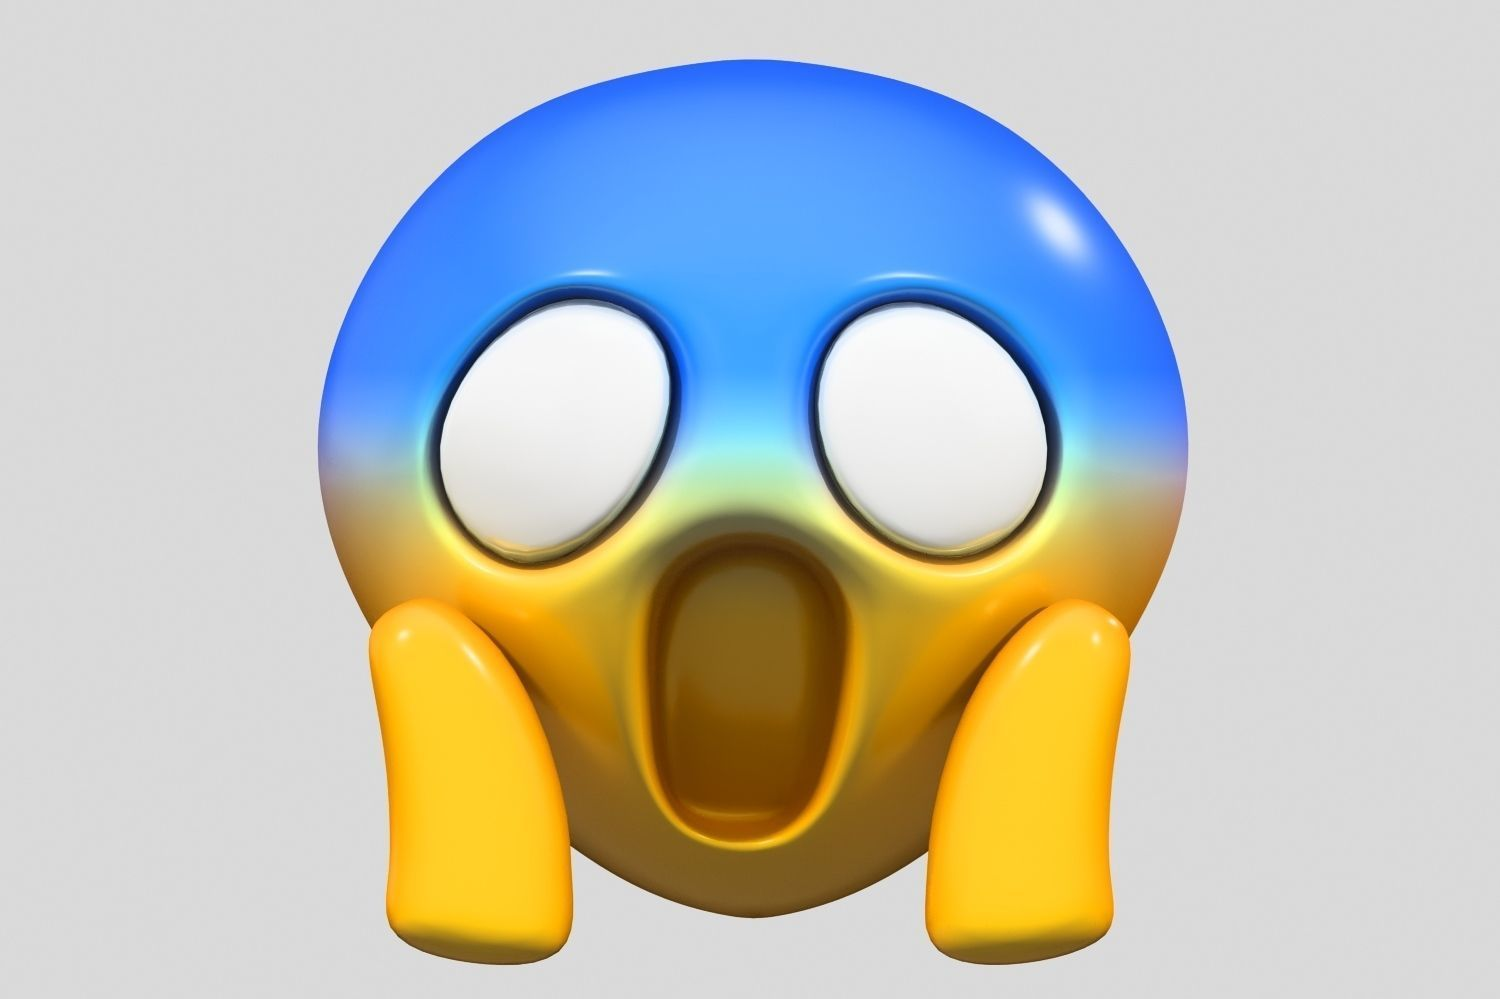 Emoji Face Screaming in Fear